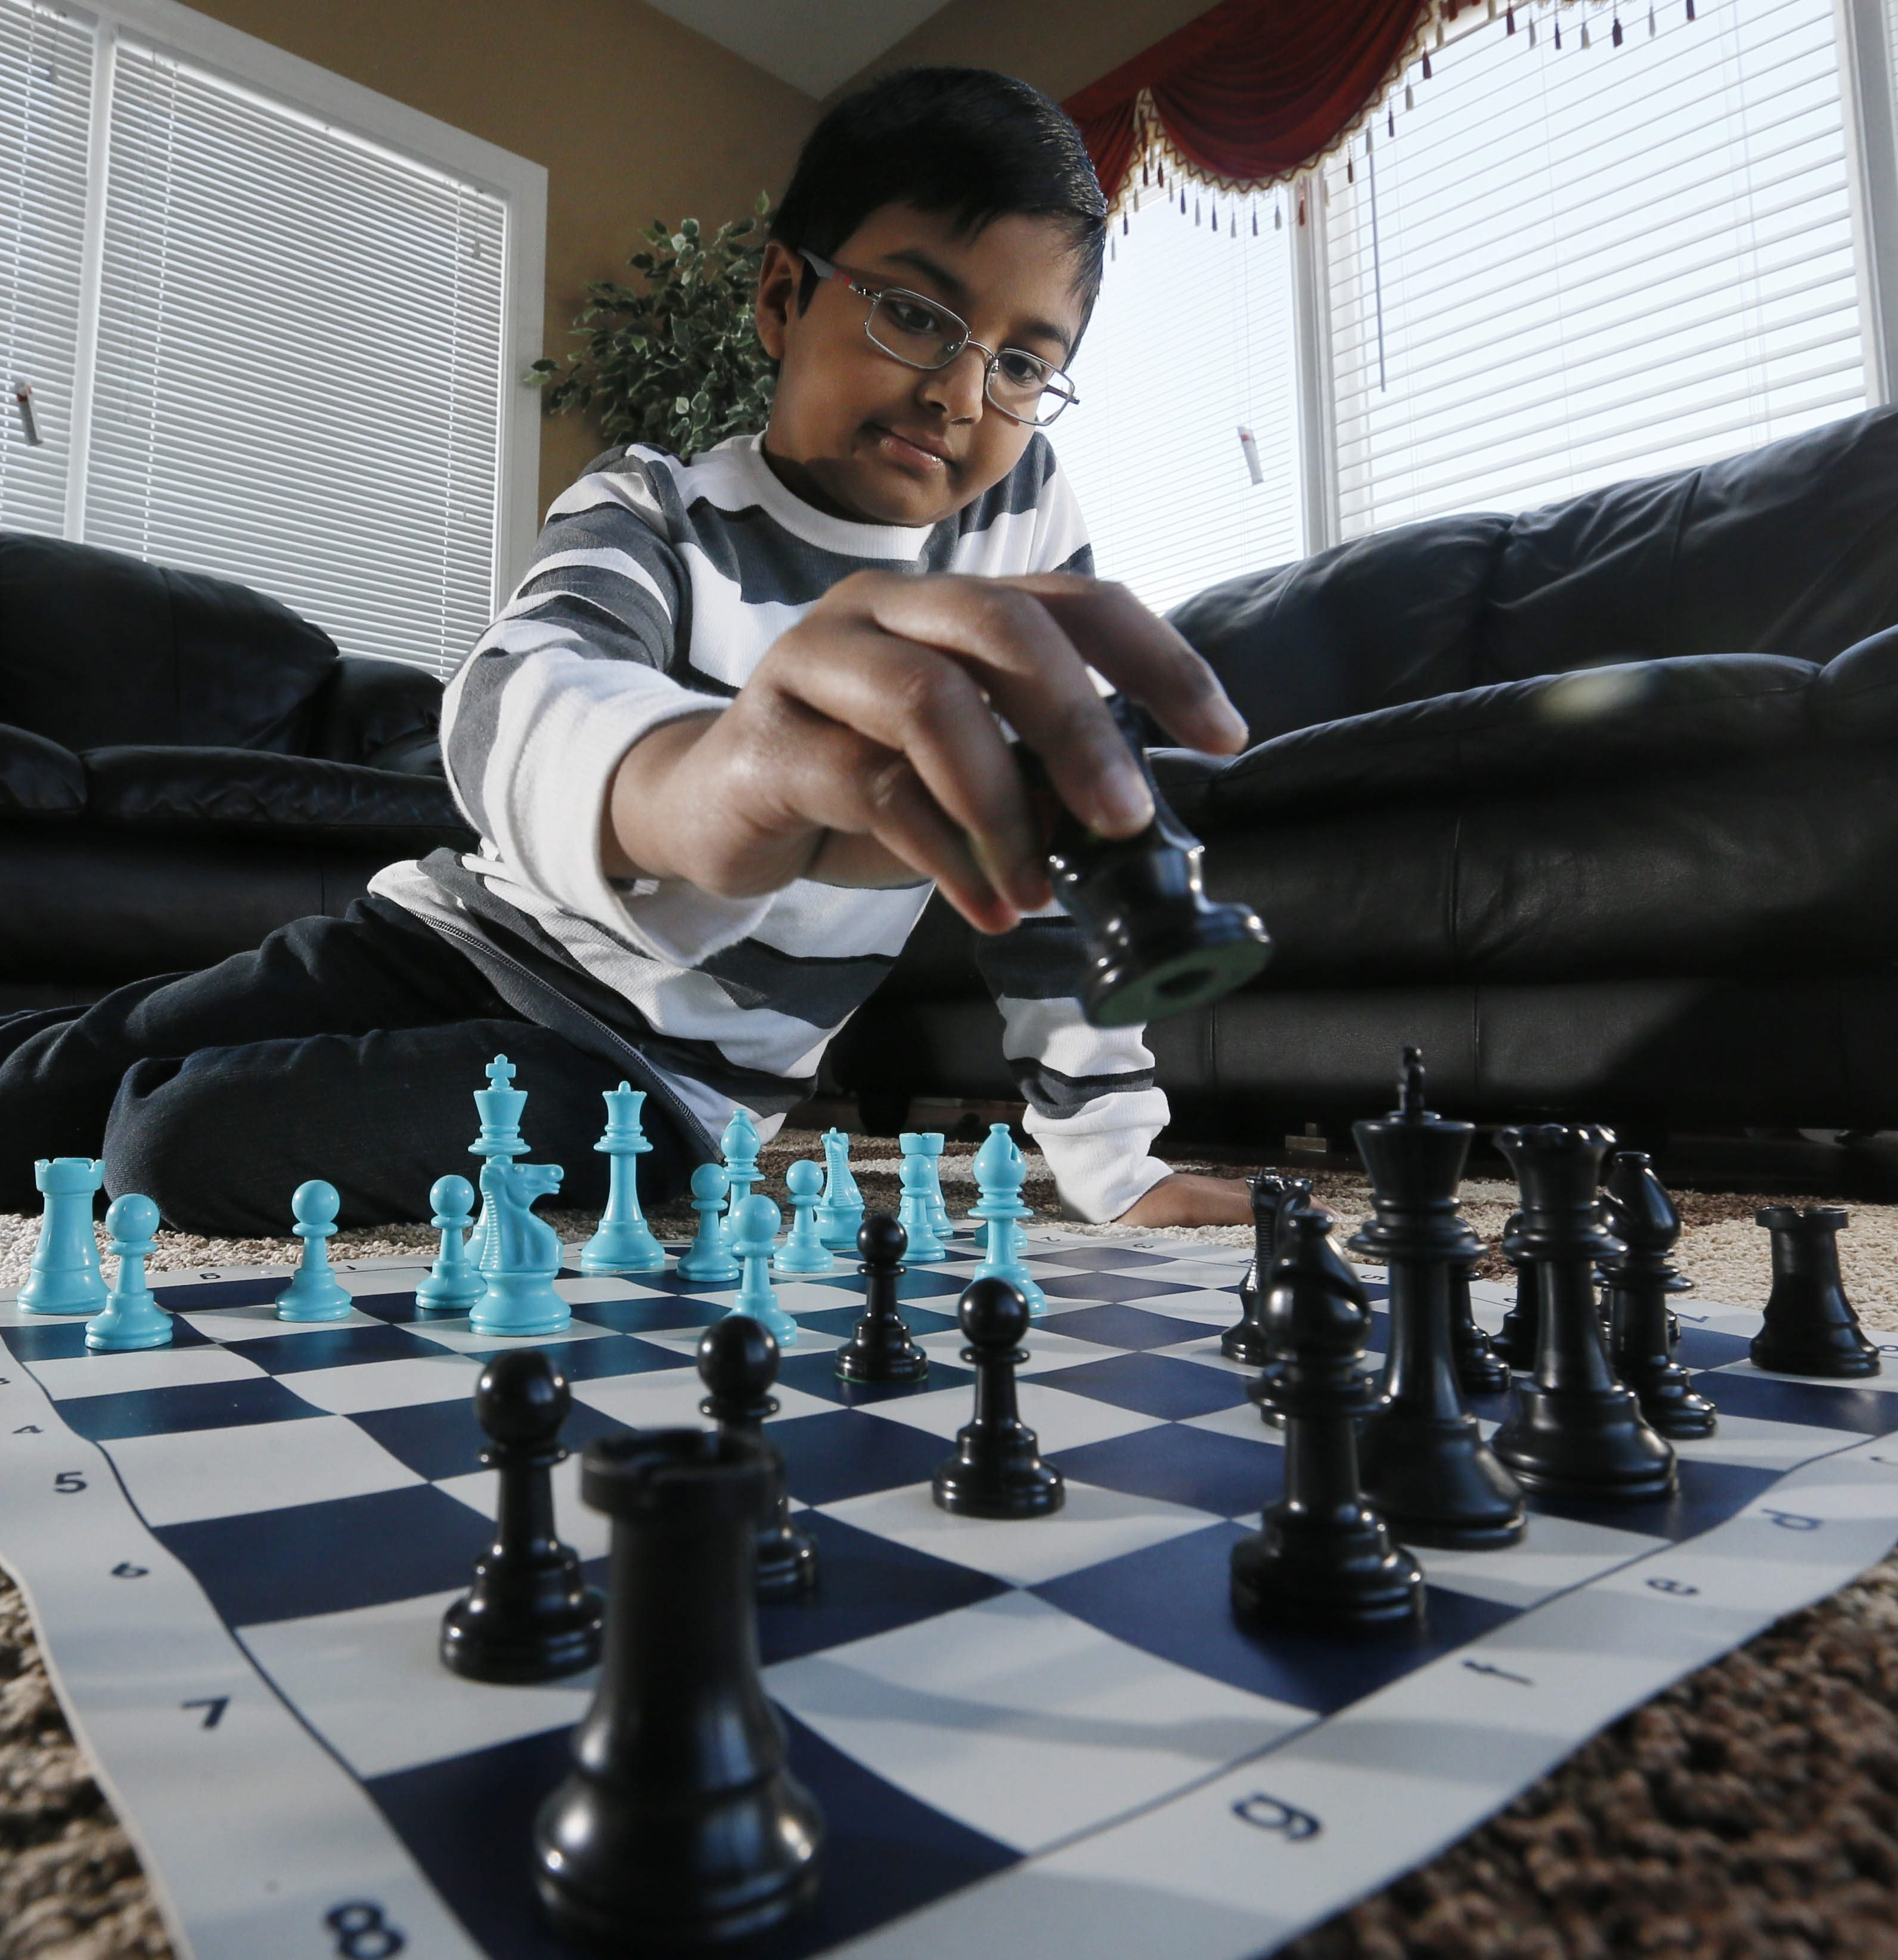 Ashton William, 9, of Amherst, beat 150 other kids in his age group to win the 48th Annual New York Chess Championship in Saratoga Springs earlier this month.